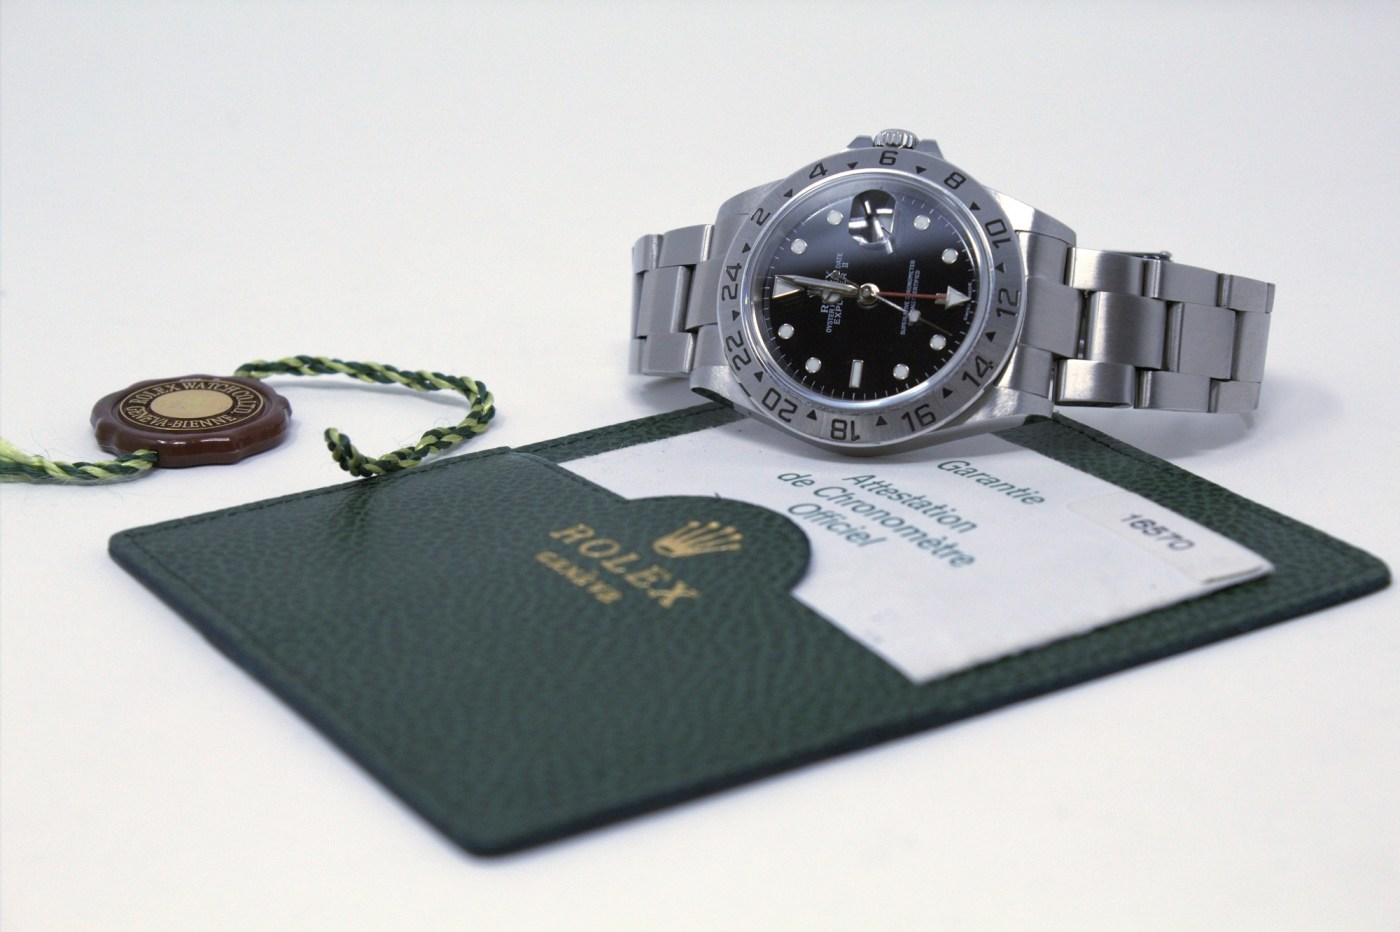 Rolex Explorer II at Chronoexpert